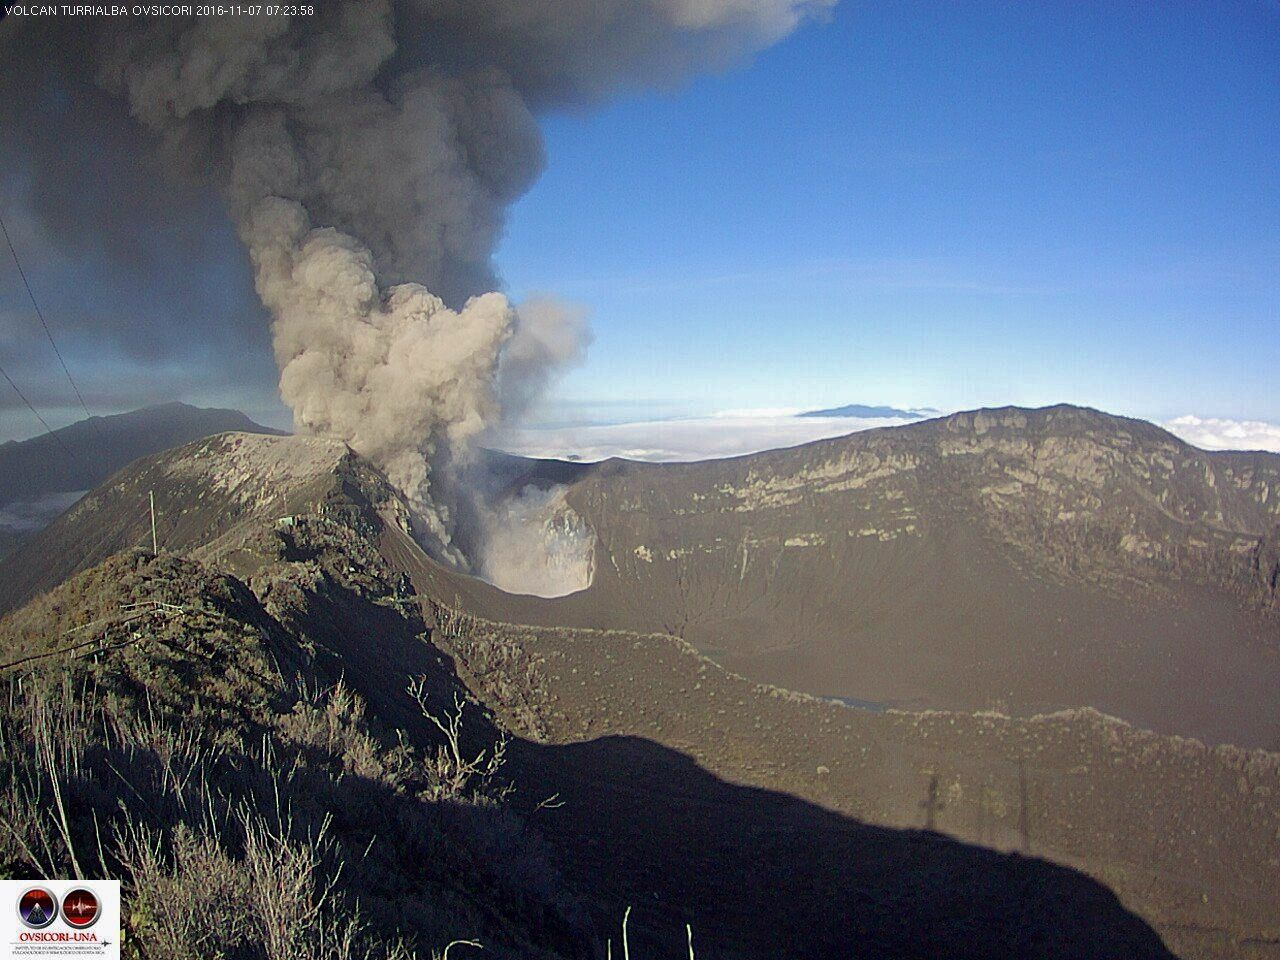 Turrialba - 11/07/2016 ash emissions respectively at 5:47 and 7:23 - Webcams Ovsicori